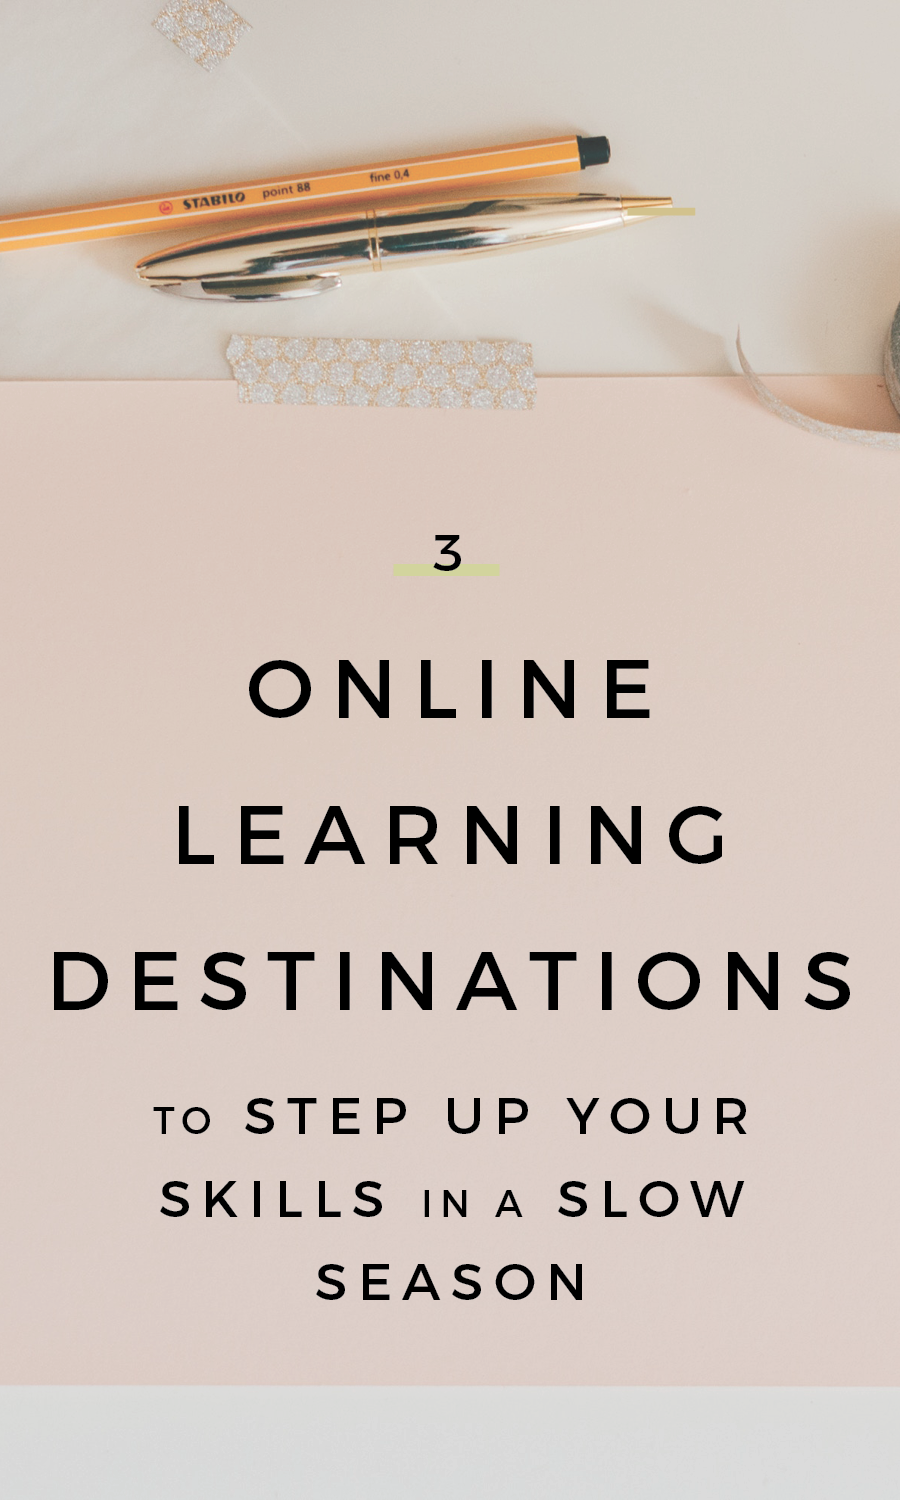 3 Online Learning Destinations To Step Up Your Skills In A Slow Season